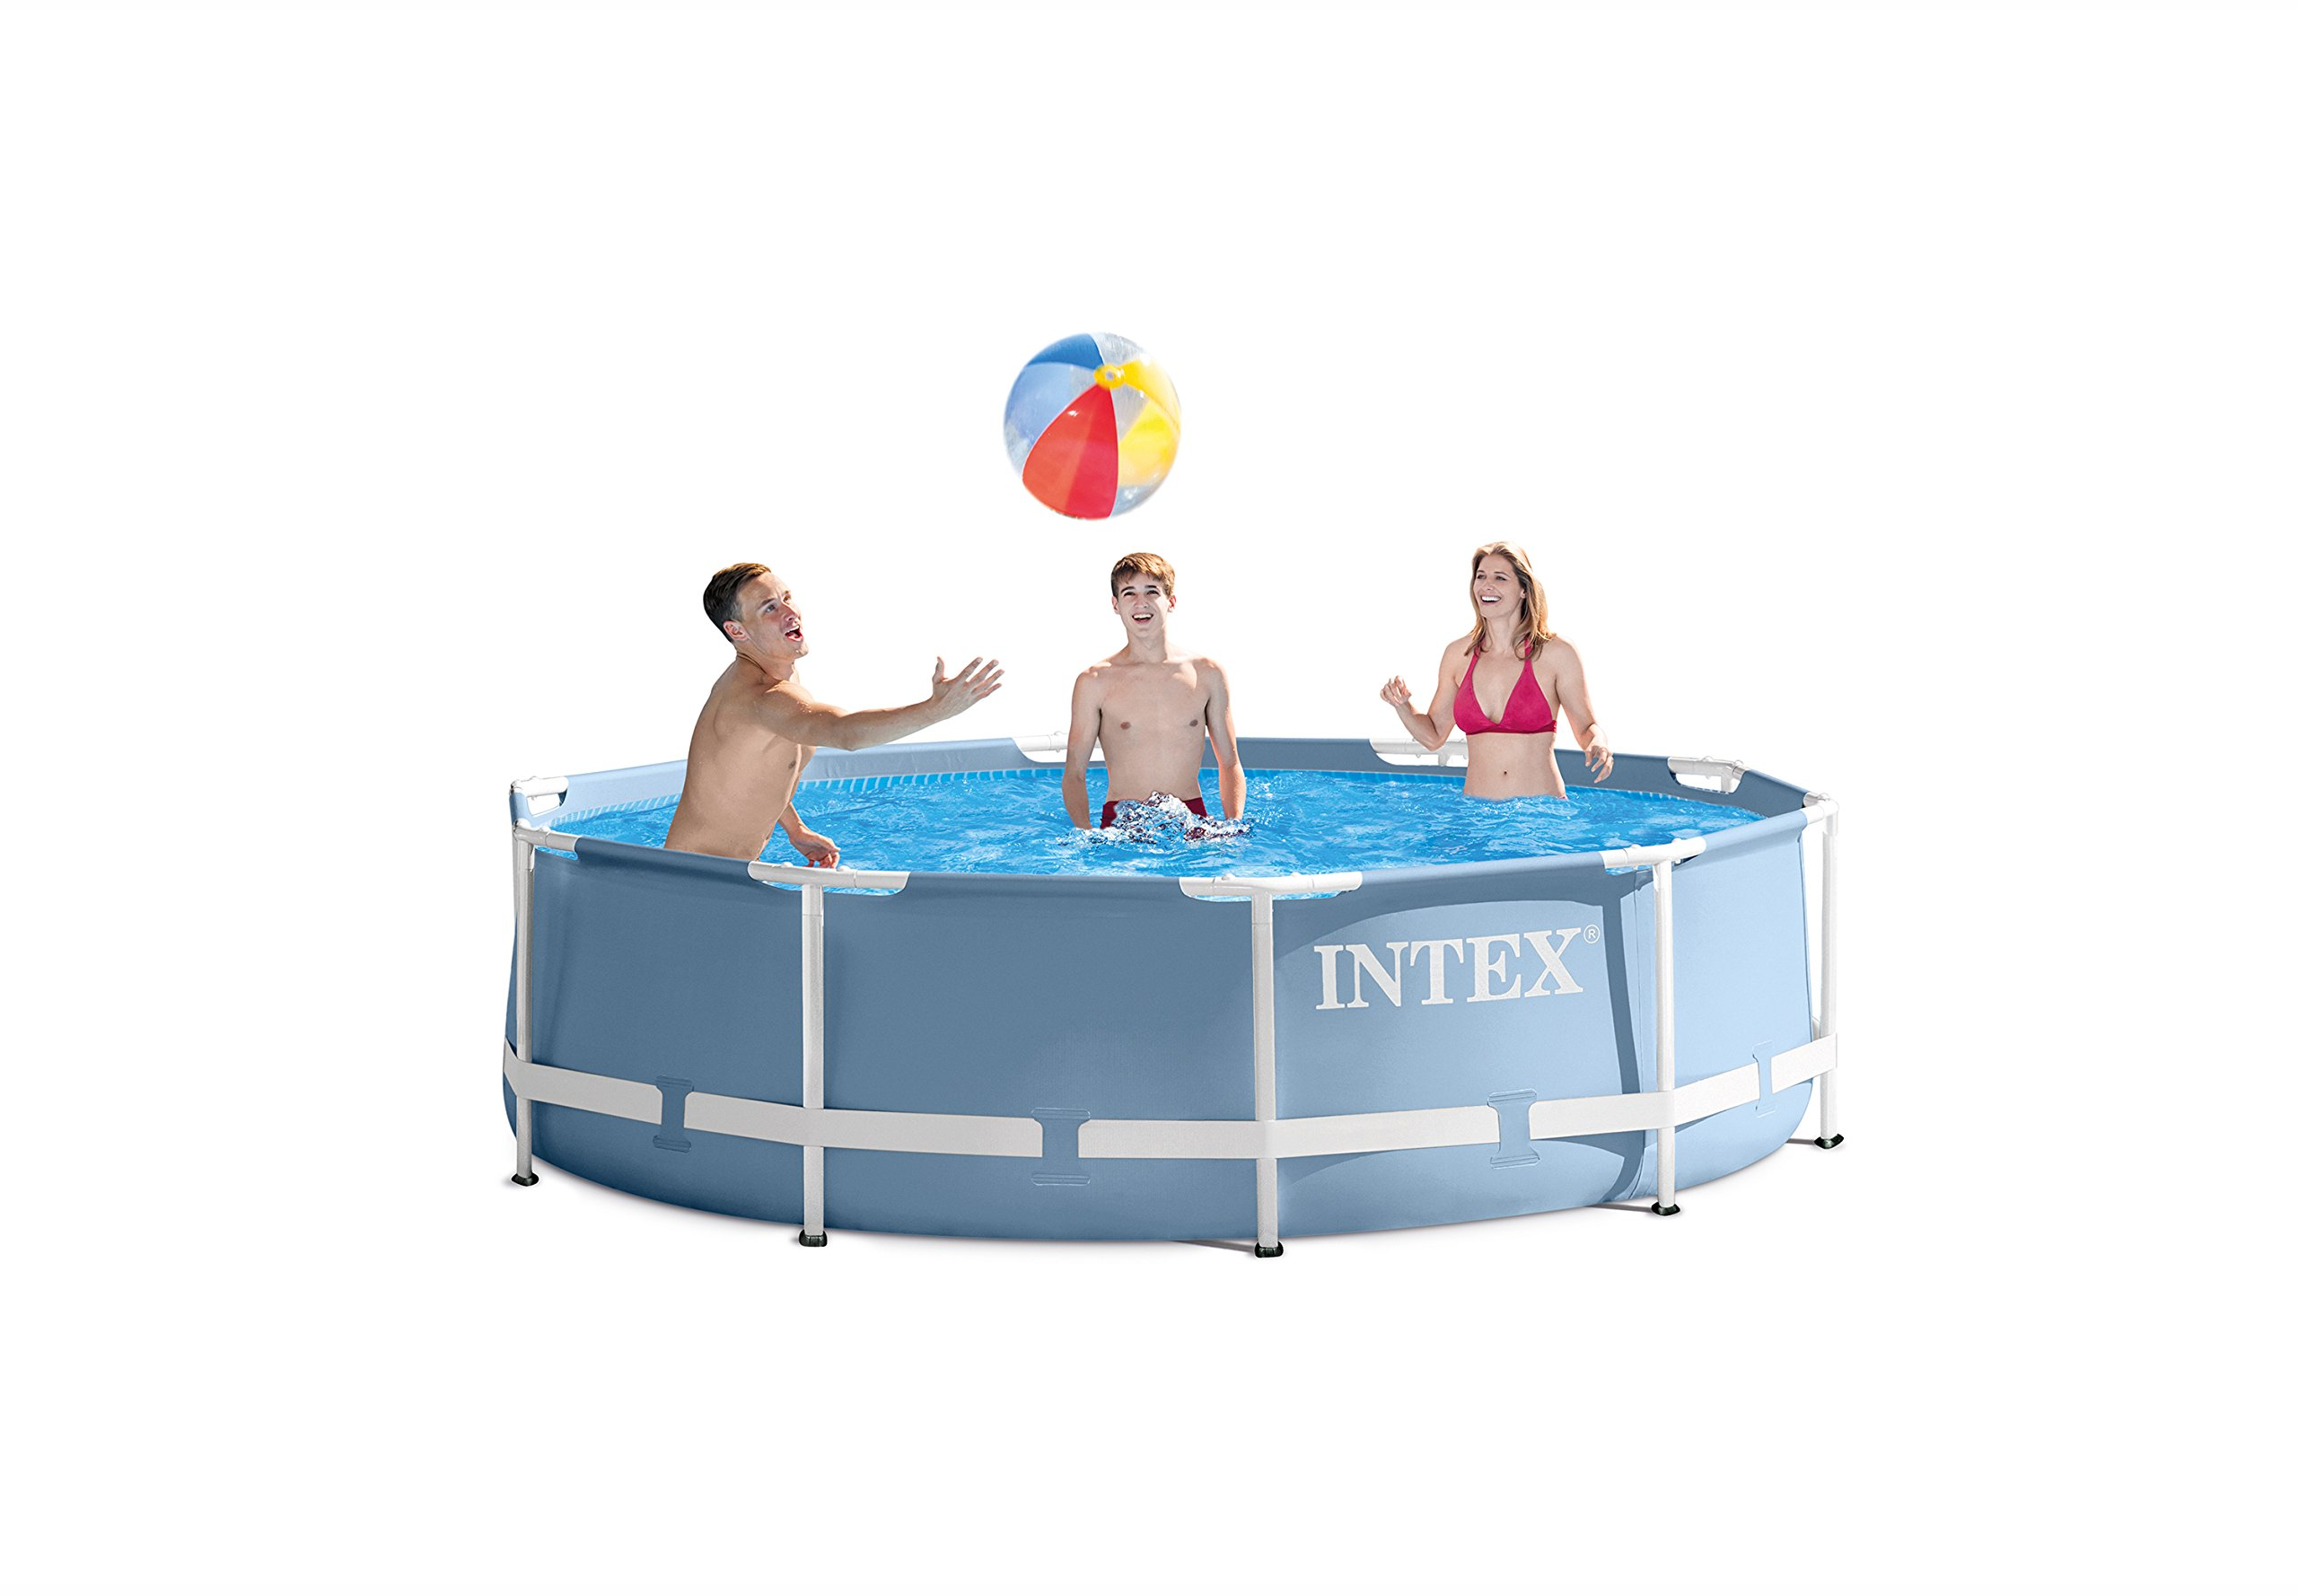 Intex 12ft X 30in Prism Frame Pool Set with Filter Pump by INTEX (Image #2)